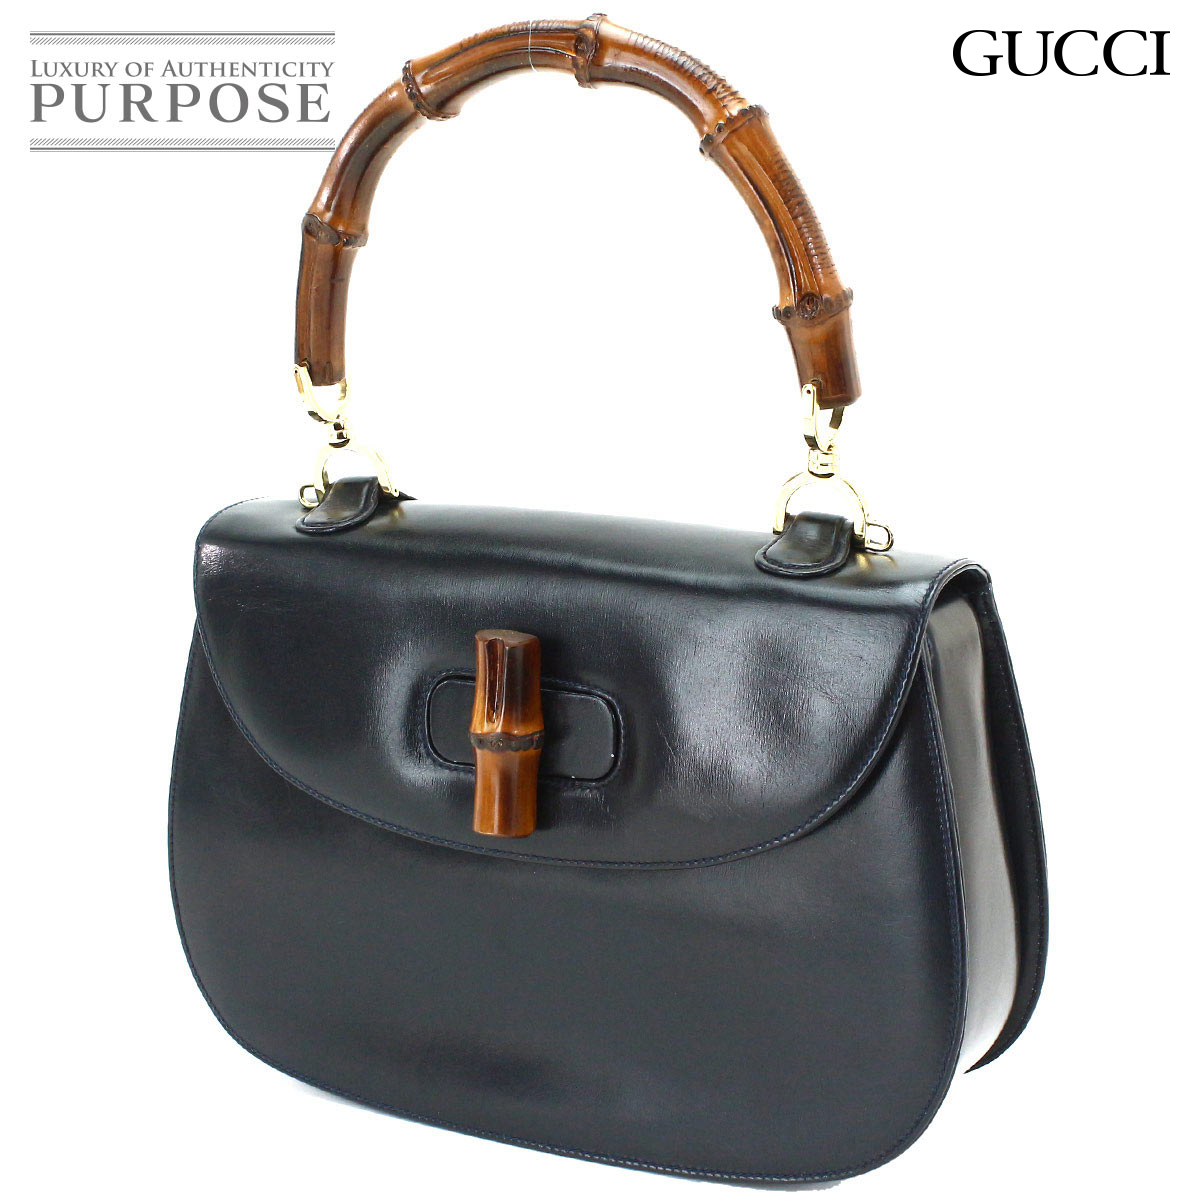 5dea055645687 Gucci GUCCI bamboo 2WAY hand shoulder bag leather black 000 1951 0633  used   brand